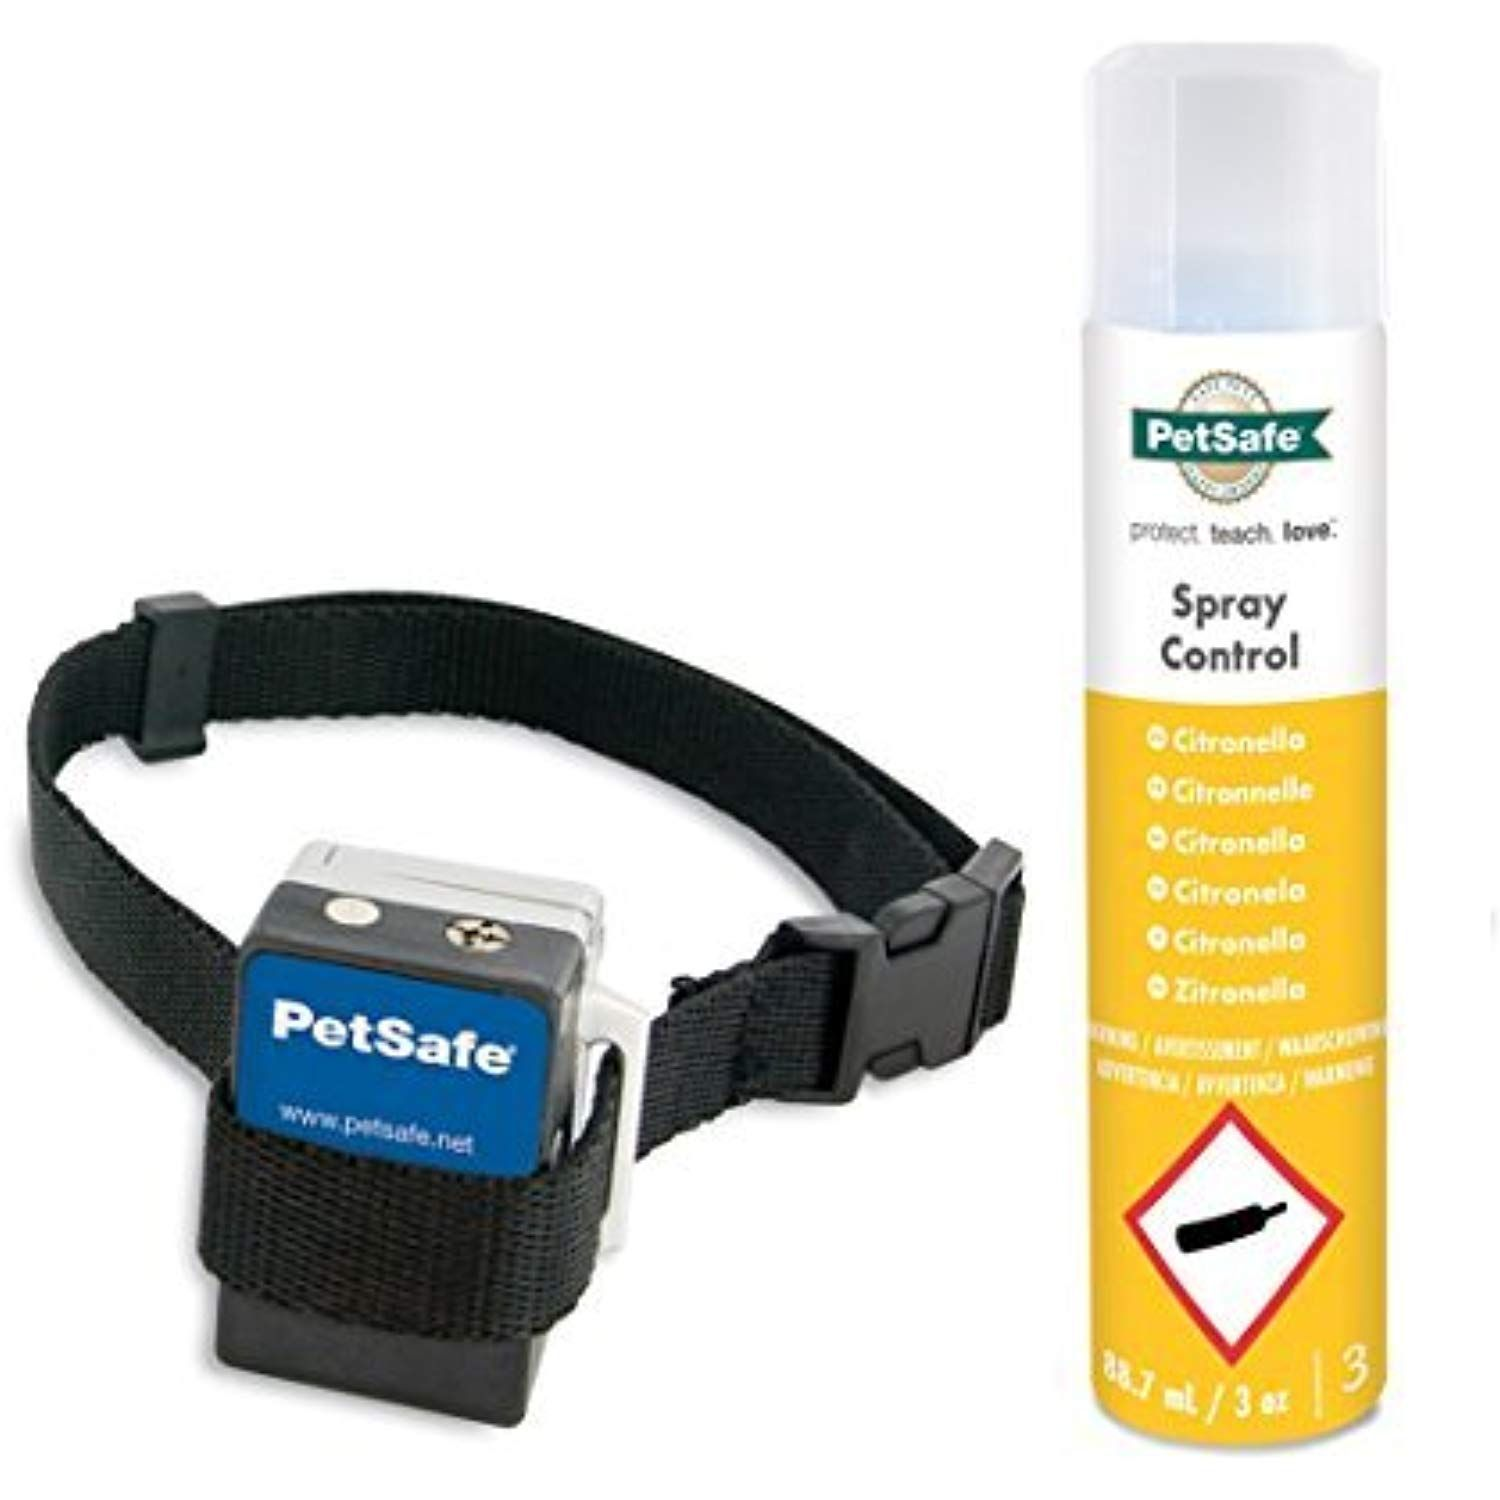 Petsafe Gentle Spray Bark Collar For Dogs Citronella Anti Bark Device Water Resistant You Can Get A Citronella Bark Collars For Dogs Citronella Dog Collar